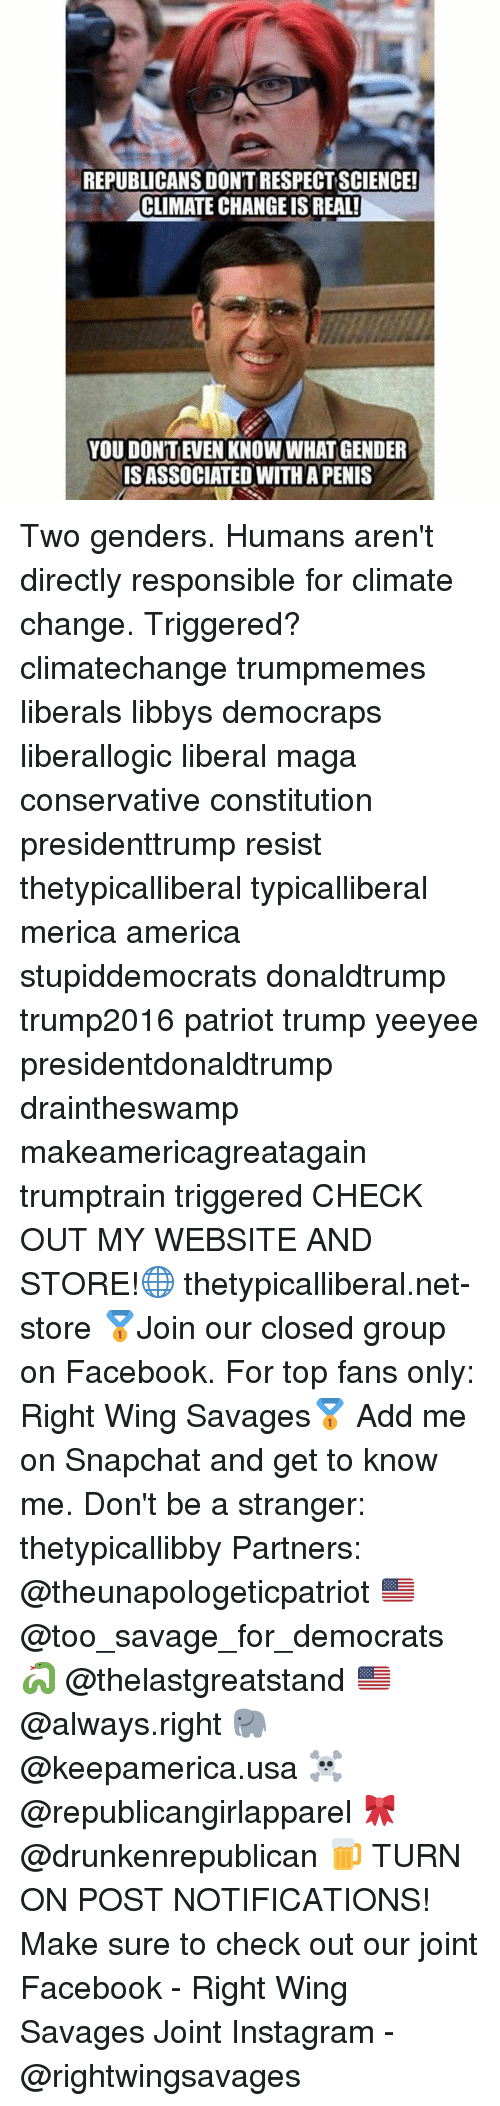 Alwaysed: REPUBLICANS DONT RESPECTSCIENCE!  CLIMATE CHANGE IS REAL!  YOU DONTEVEN KNOW WHAT GENDER  IS ASSOCIATED WITH APENIS Two genders. Humans aren't directly responsible for climate change. Triggered? climatechange trumpmemes liberals libbys democraps liberallogic liberal maga conservative constitution presidenttrump resist thetypicalliberal typicalliberal merica america stupiddemocrats donaldtrump trump2016 patriot trump yeeyee presidentdonaldtrump draintheswamp makeamericagreatagain trumptrain triggered CHECK OUT MY WEBSITE AND STORE!🌐 thetypicalliberal.net-store 🥇Join our closed group on Facebook. For top fans only: Right Wing Savages🥇 Add me on Snapchat and get to know me. Don't be a stranger: thetypicallibby Partners: @theunapologeticpatriot 🇺🇸 @too_savage_for_democrats 🐍 @thelastgreatstand 🇺🇸 @always.right 🐘 @keepamerica.usa ☠️ @republicangirlapparel 🎀 @drunkenrepublican 🍺 TURN ON POST NOTIFICATIONS! Make sure to check out our joint Facebook - Right Wing Savages Joint Instagram - @rightwingsavages